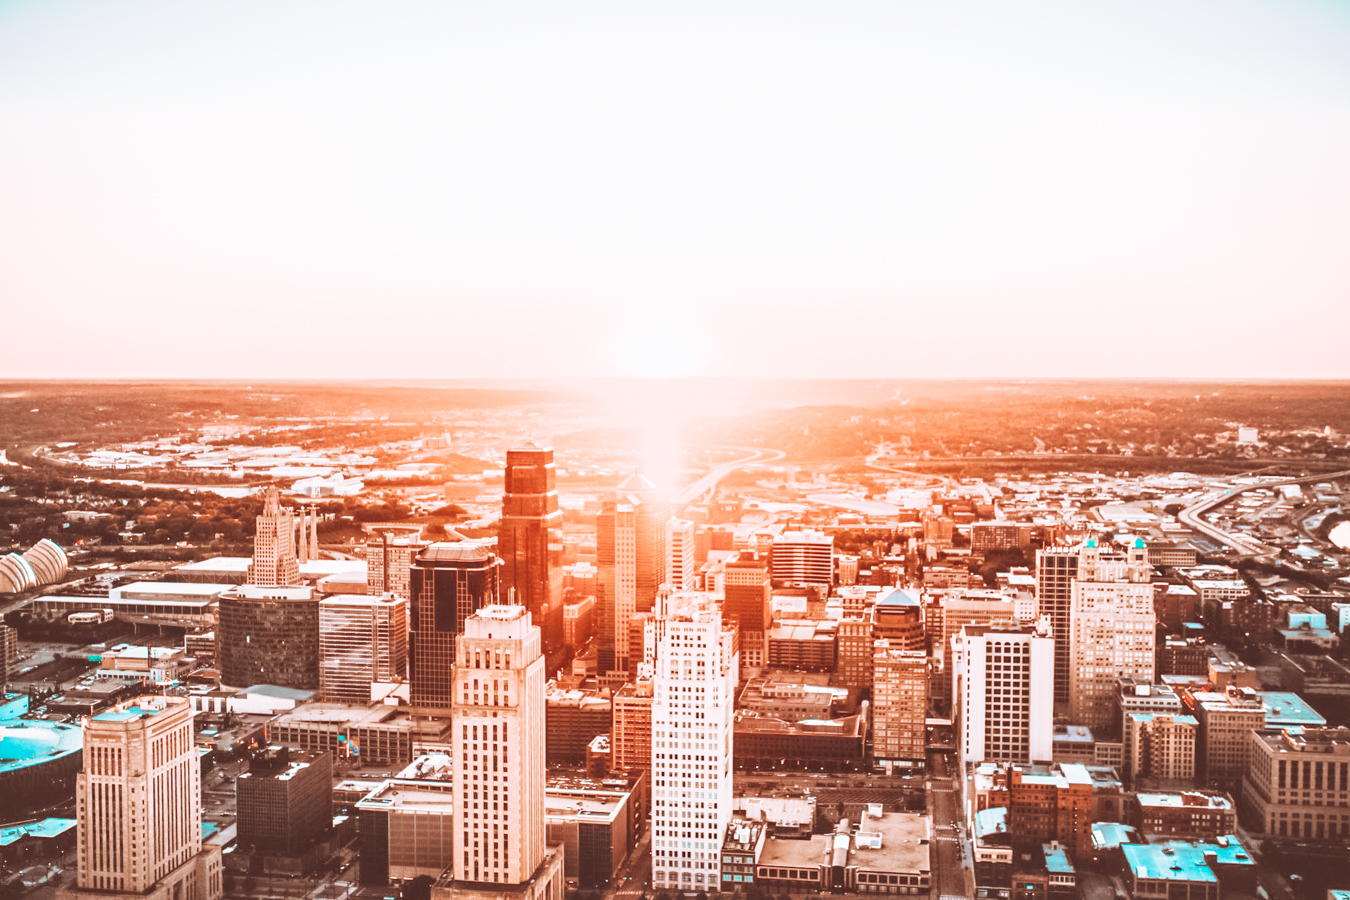 Kansas City from above